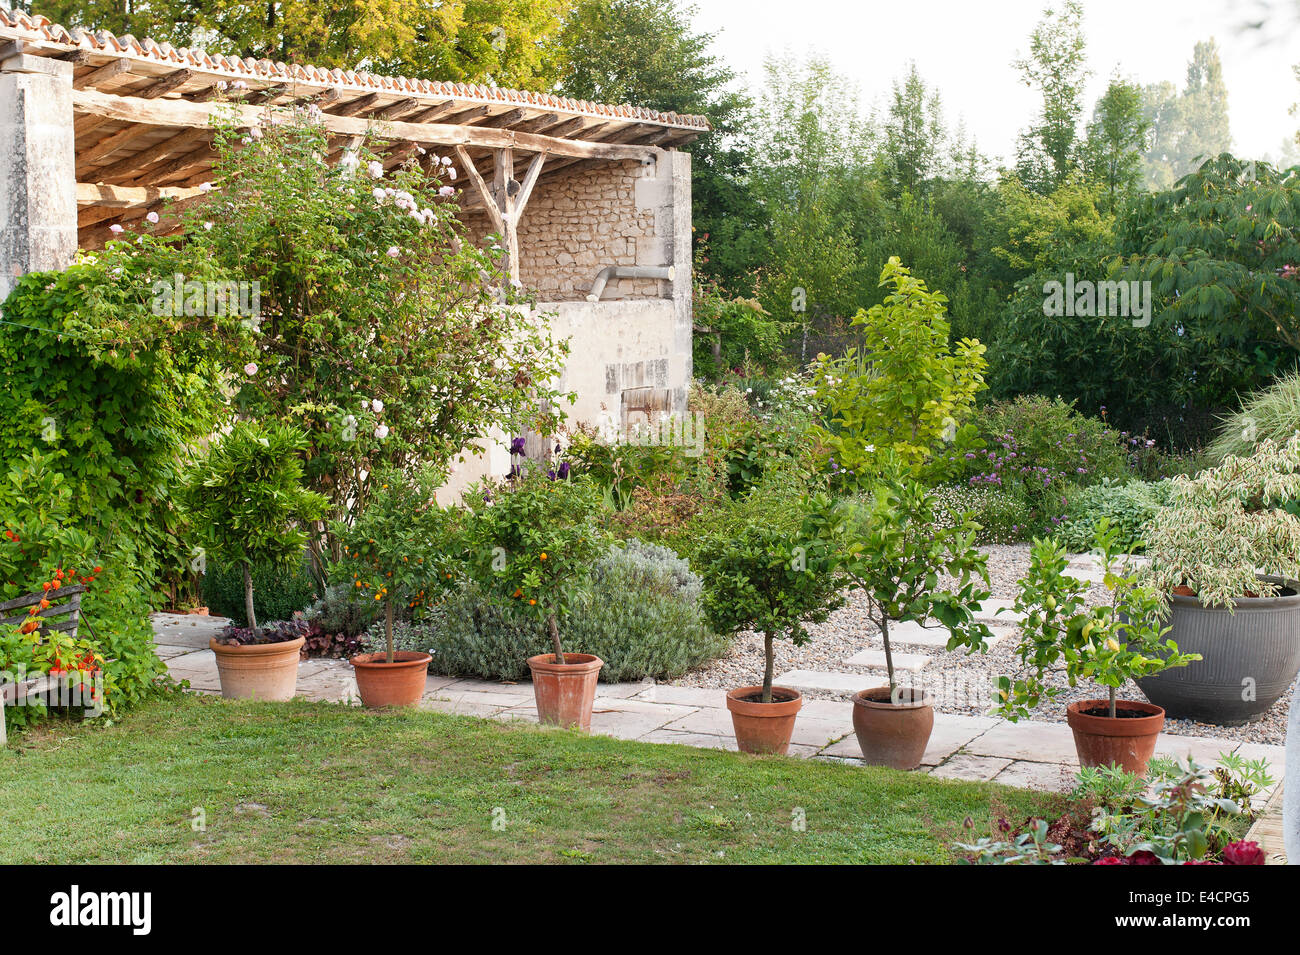 Row Of Potted Citrus Trees On Stone Paving In Garden With An Old Barn    Stock